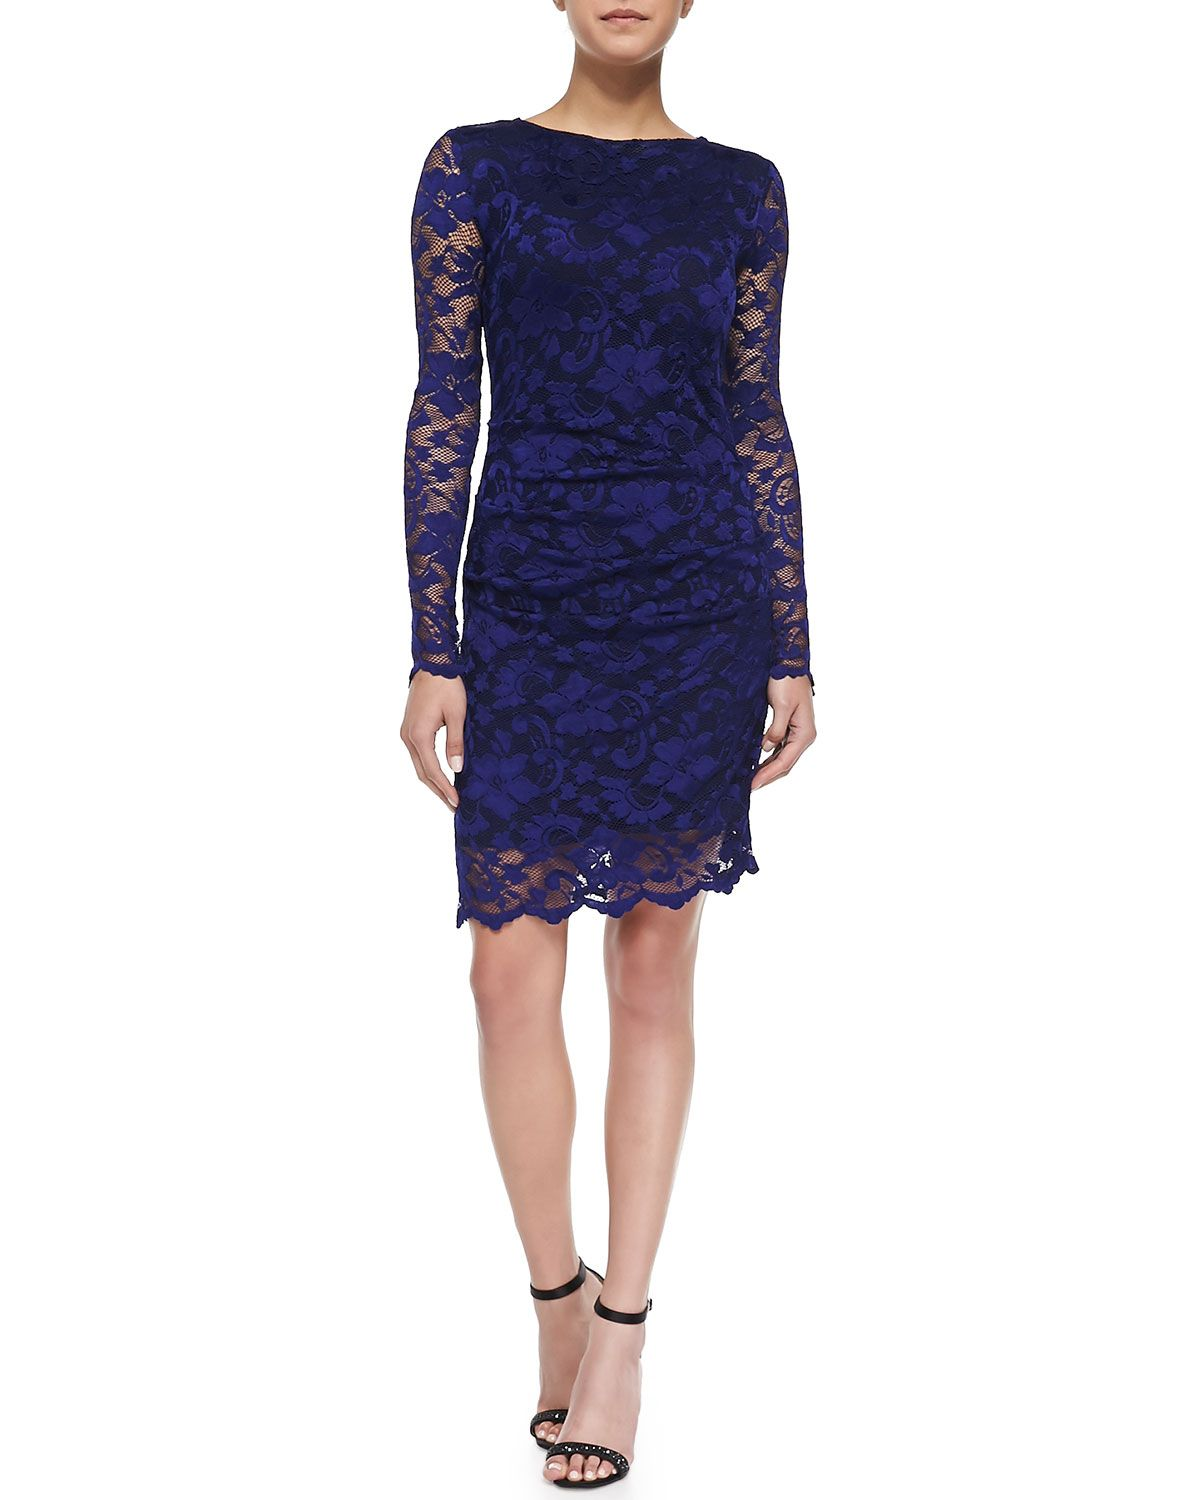 793c1da0b9f6 Long-Sleeve Lace Overlay Cocktail Dress, Size: 6, Royal Blue - Nicole Miller